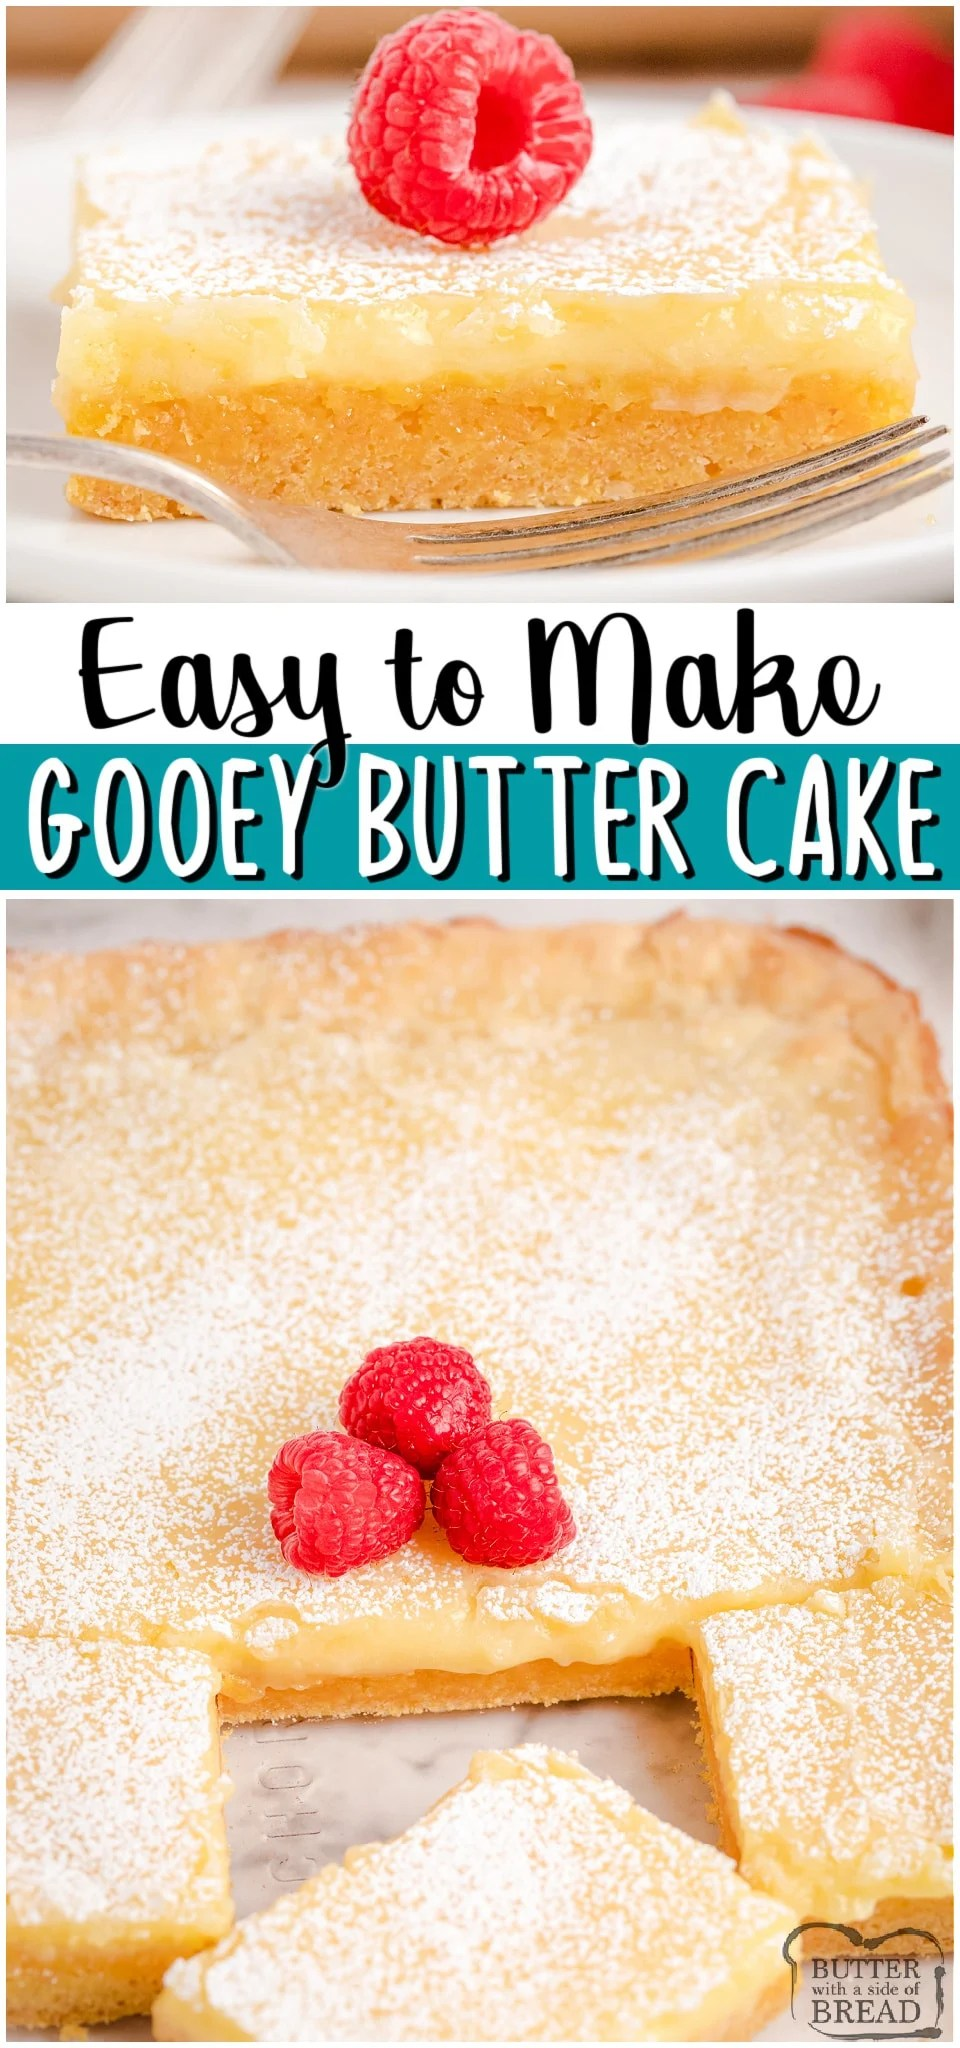 Sweet Butter Cake recipe starts with a cake mix & is made with just a handful of ingredients! Simple cake that needs no frosting- I top mine with a dusting of powdered sugar & berries. Perfect cake recipe that everyone loves!  #chesscake #buttercake #butter #cake #cakemix #easyrecipe from BUTTER WITH  A SIDE OF BREAD